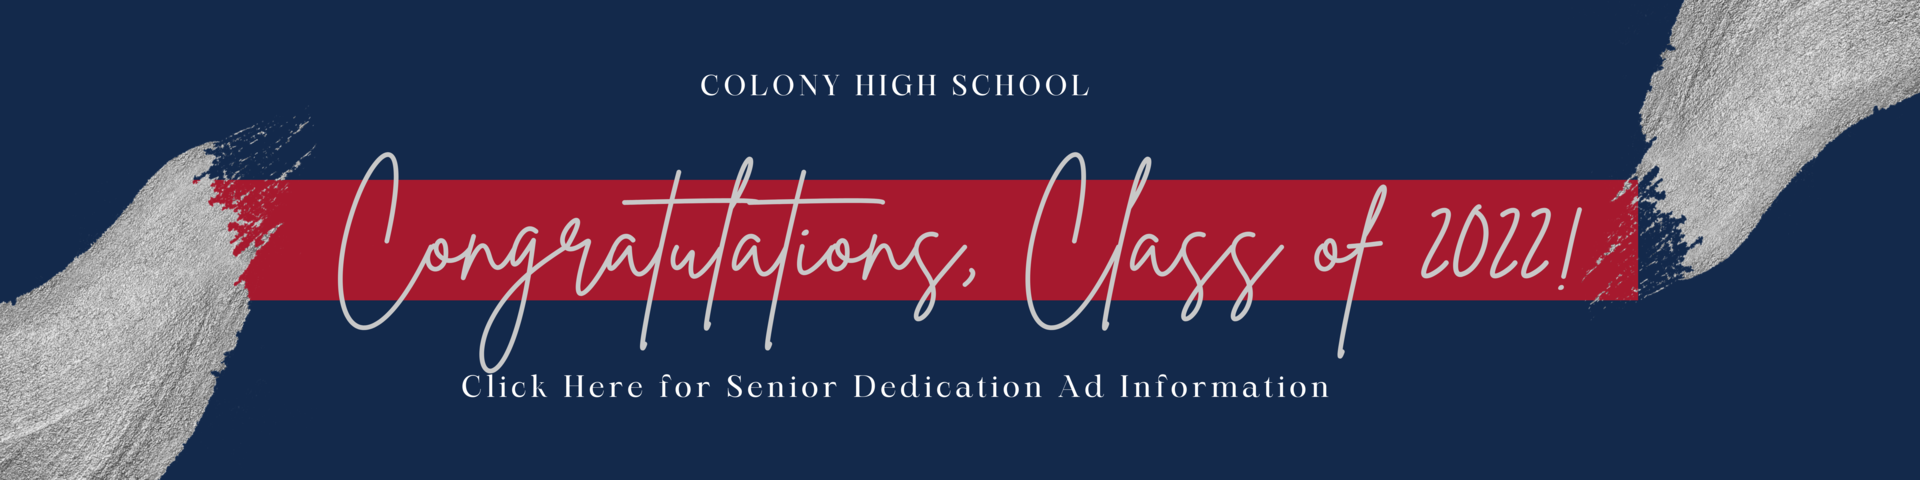 Yearbook Dedication Ads